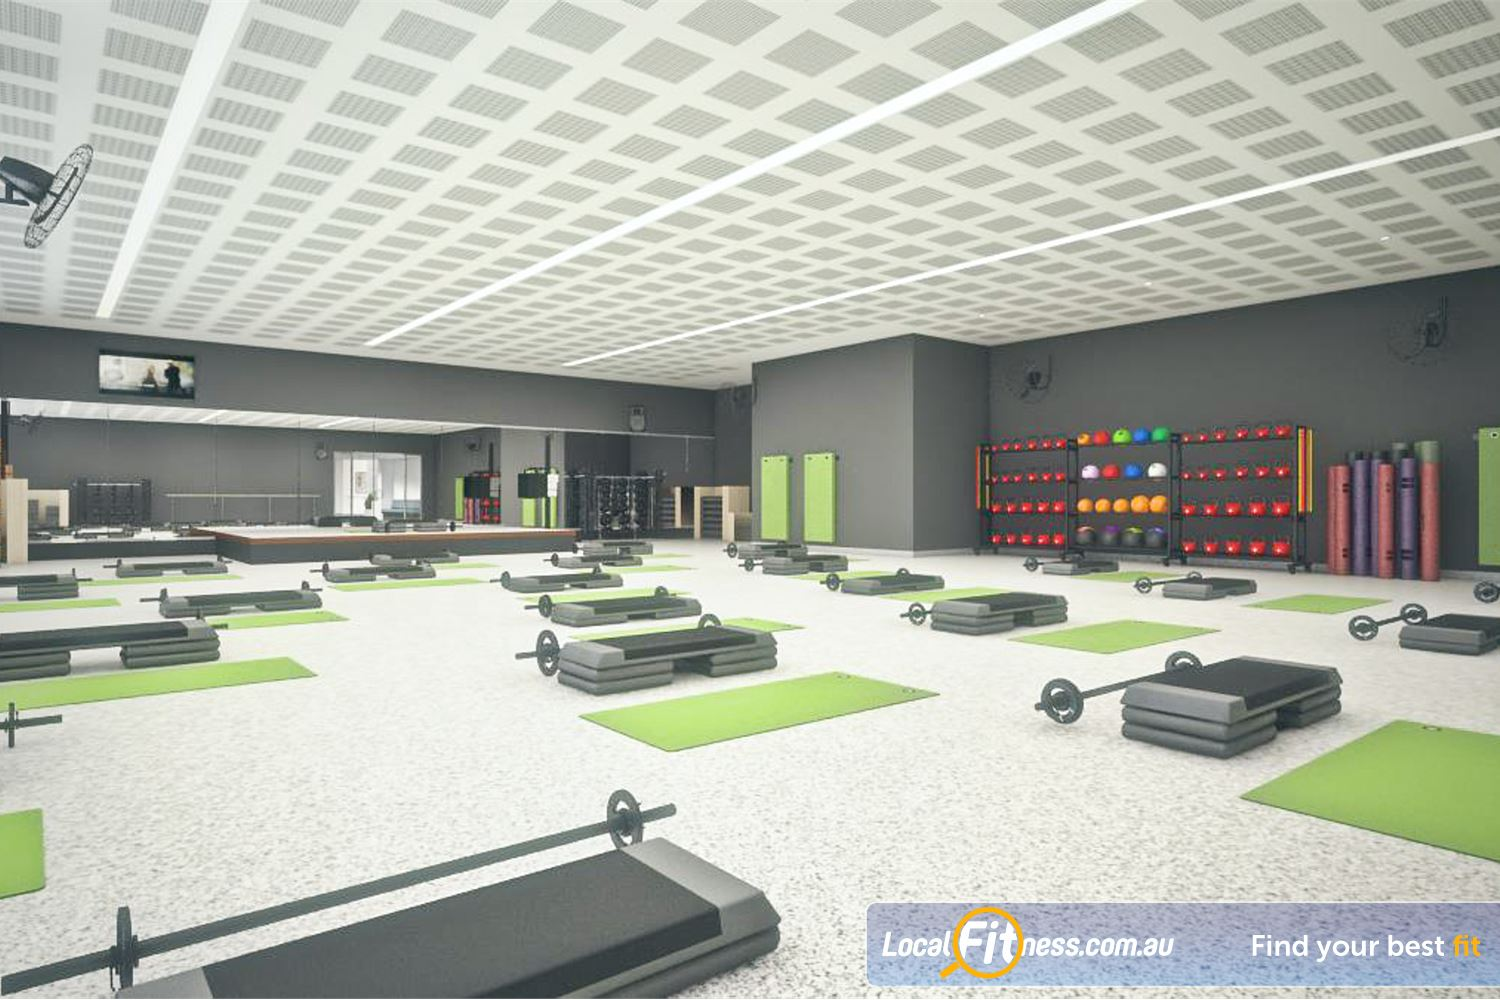 Goodlife Health Clubs Success Over 55 group fitness classes per week.